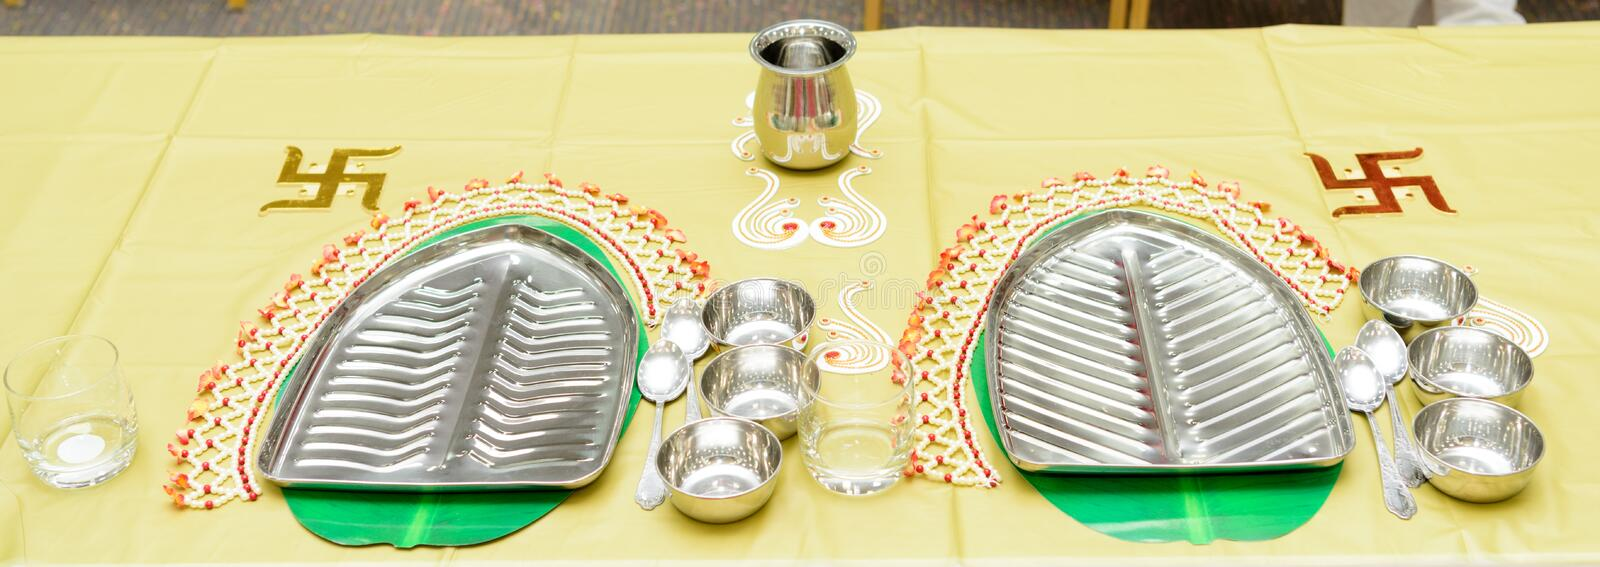 Steel Banana Leaf plates and bowl setup for traditional lunch or dinner stock photos